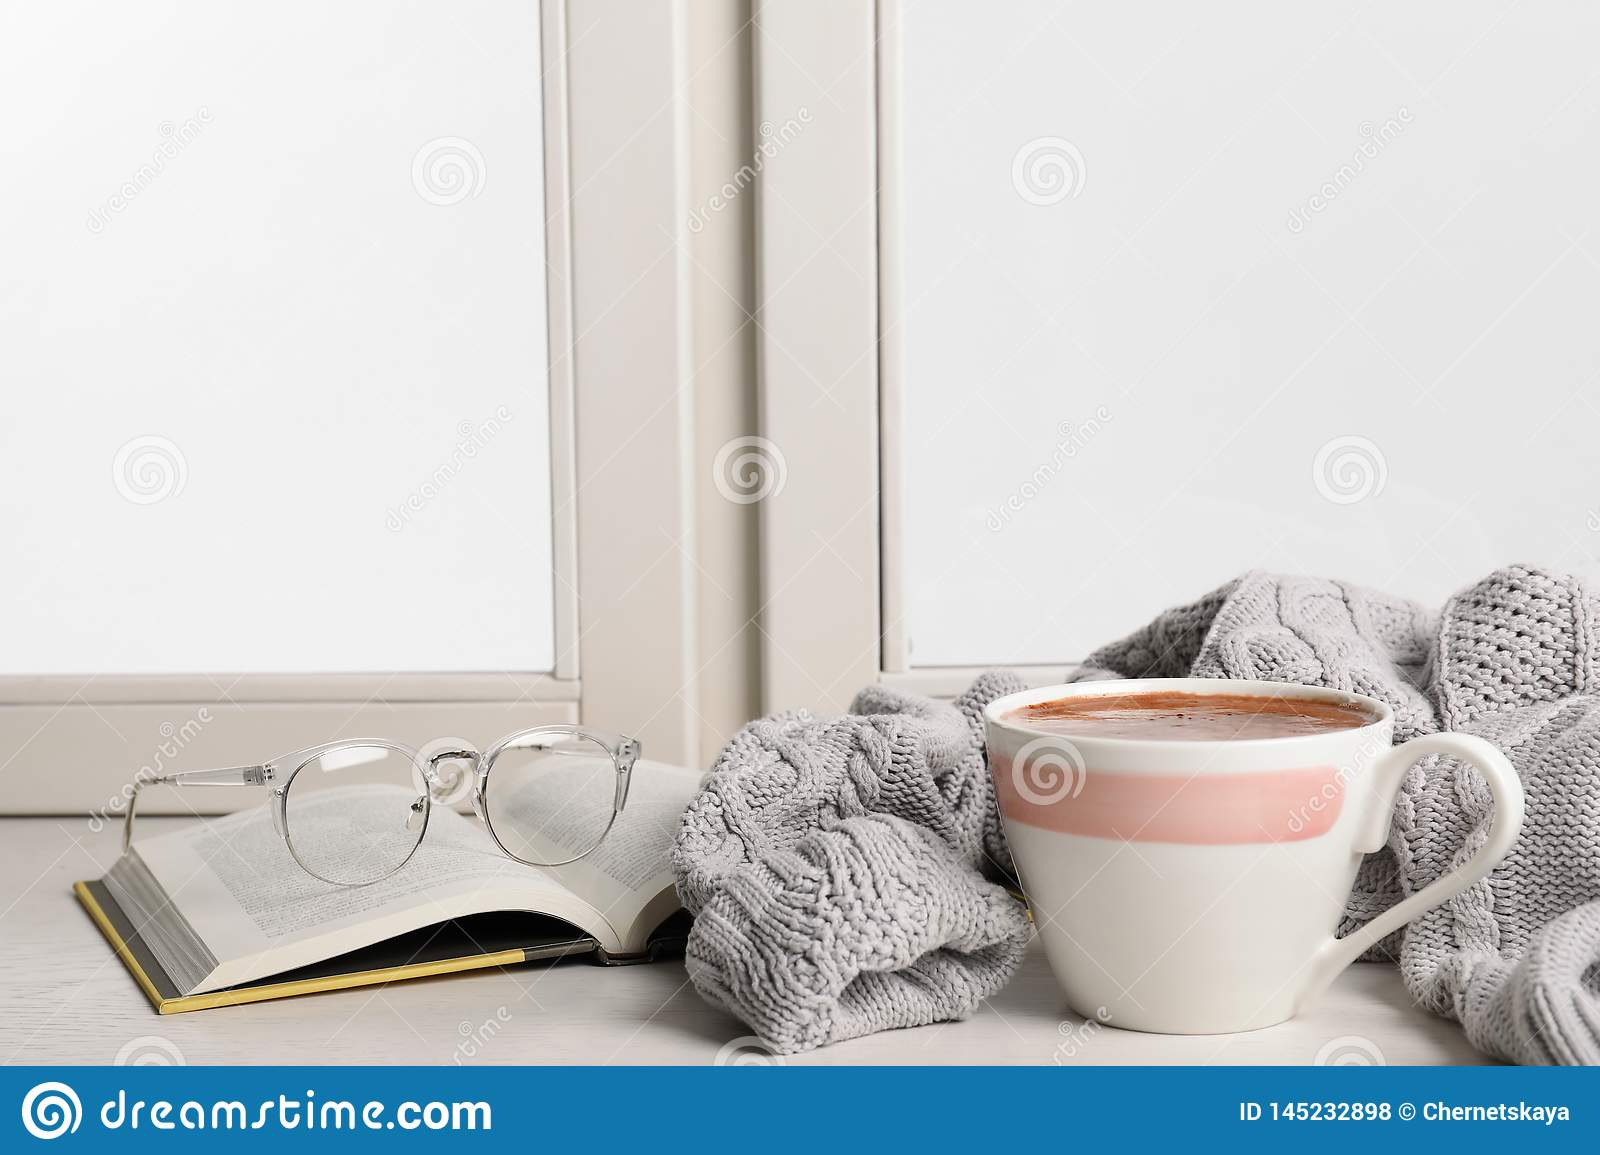 Composition with cup of hot chocolate and book on windowsill, space for text